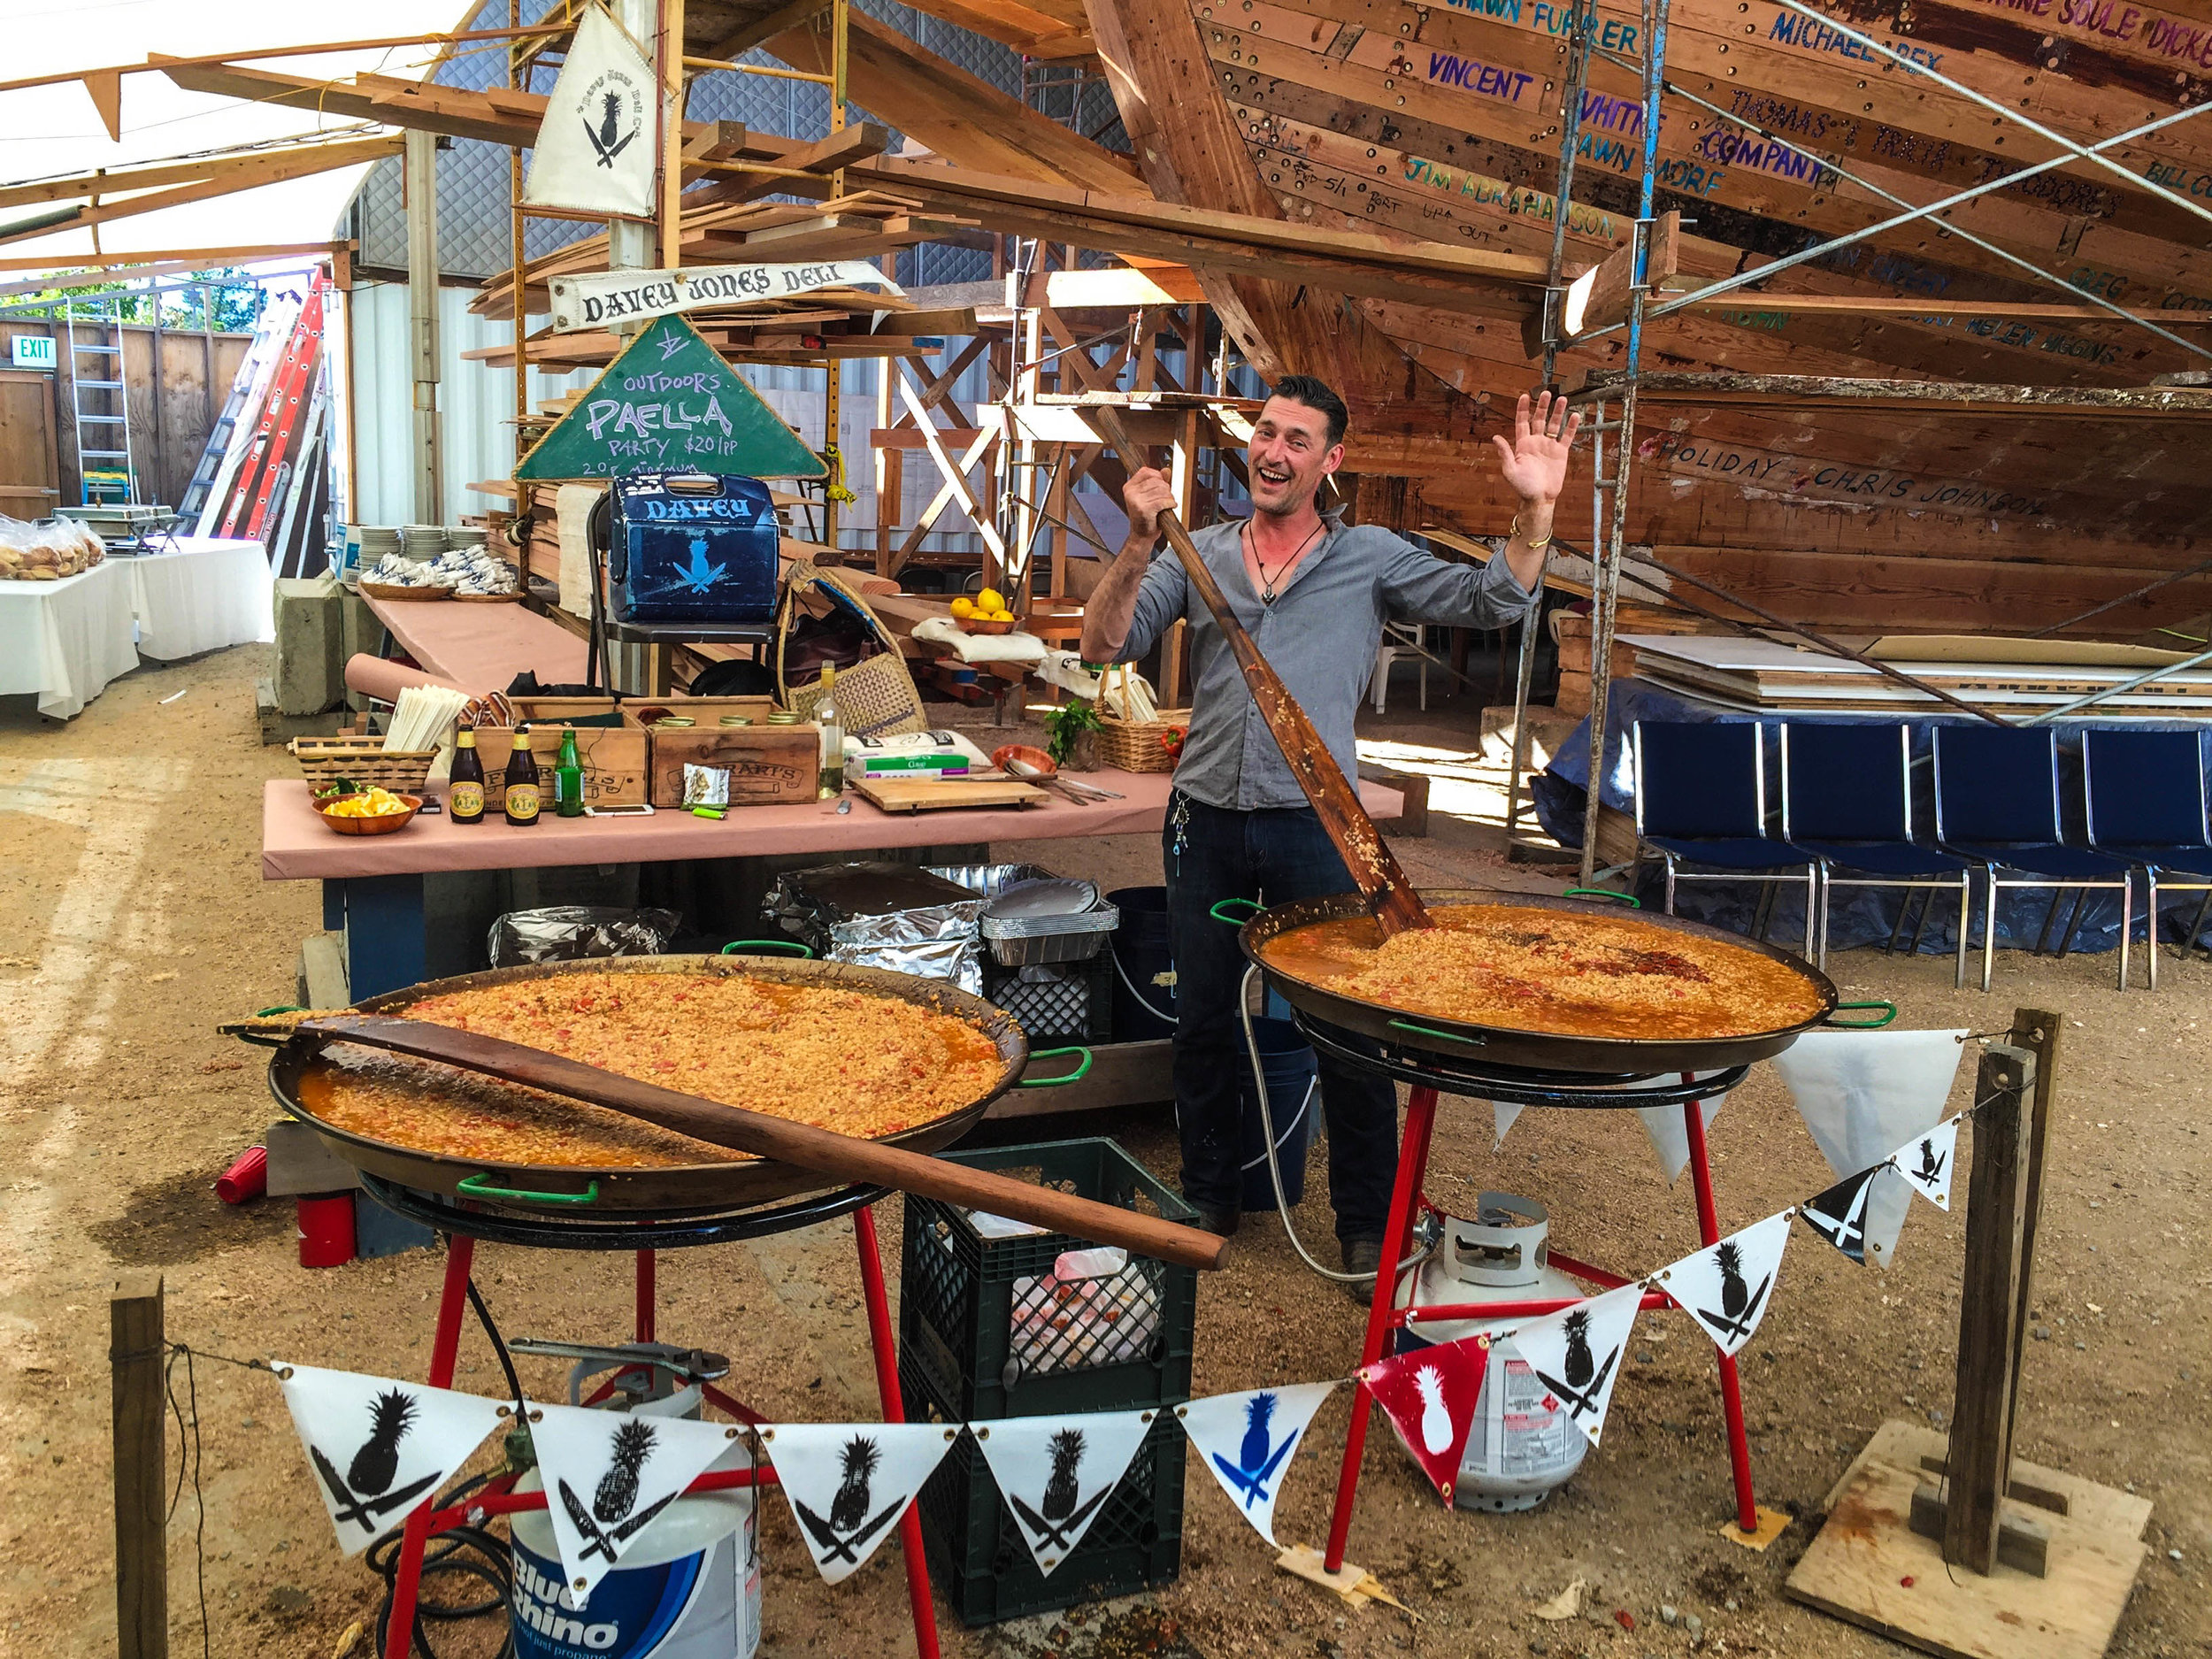 Matthew Turner Tall Ship - Paella